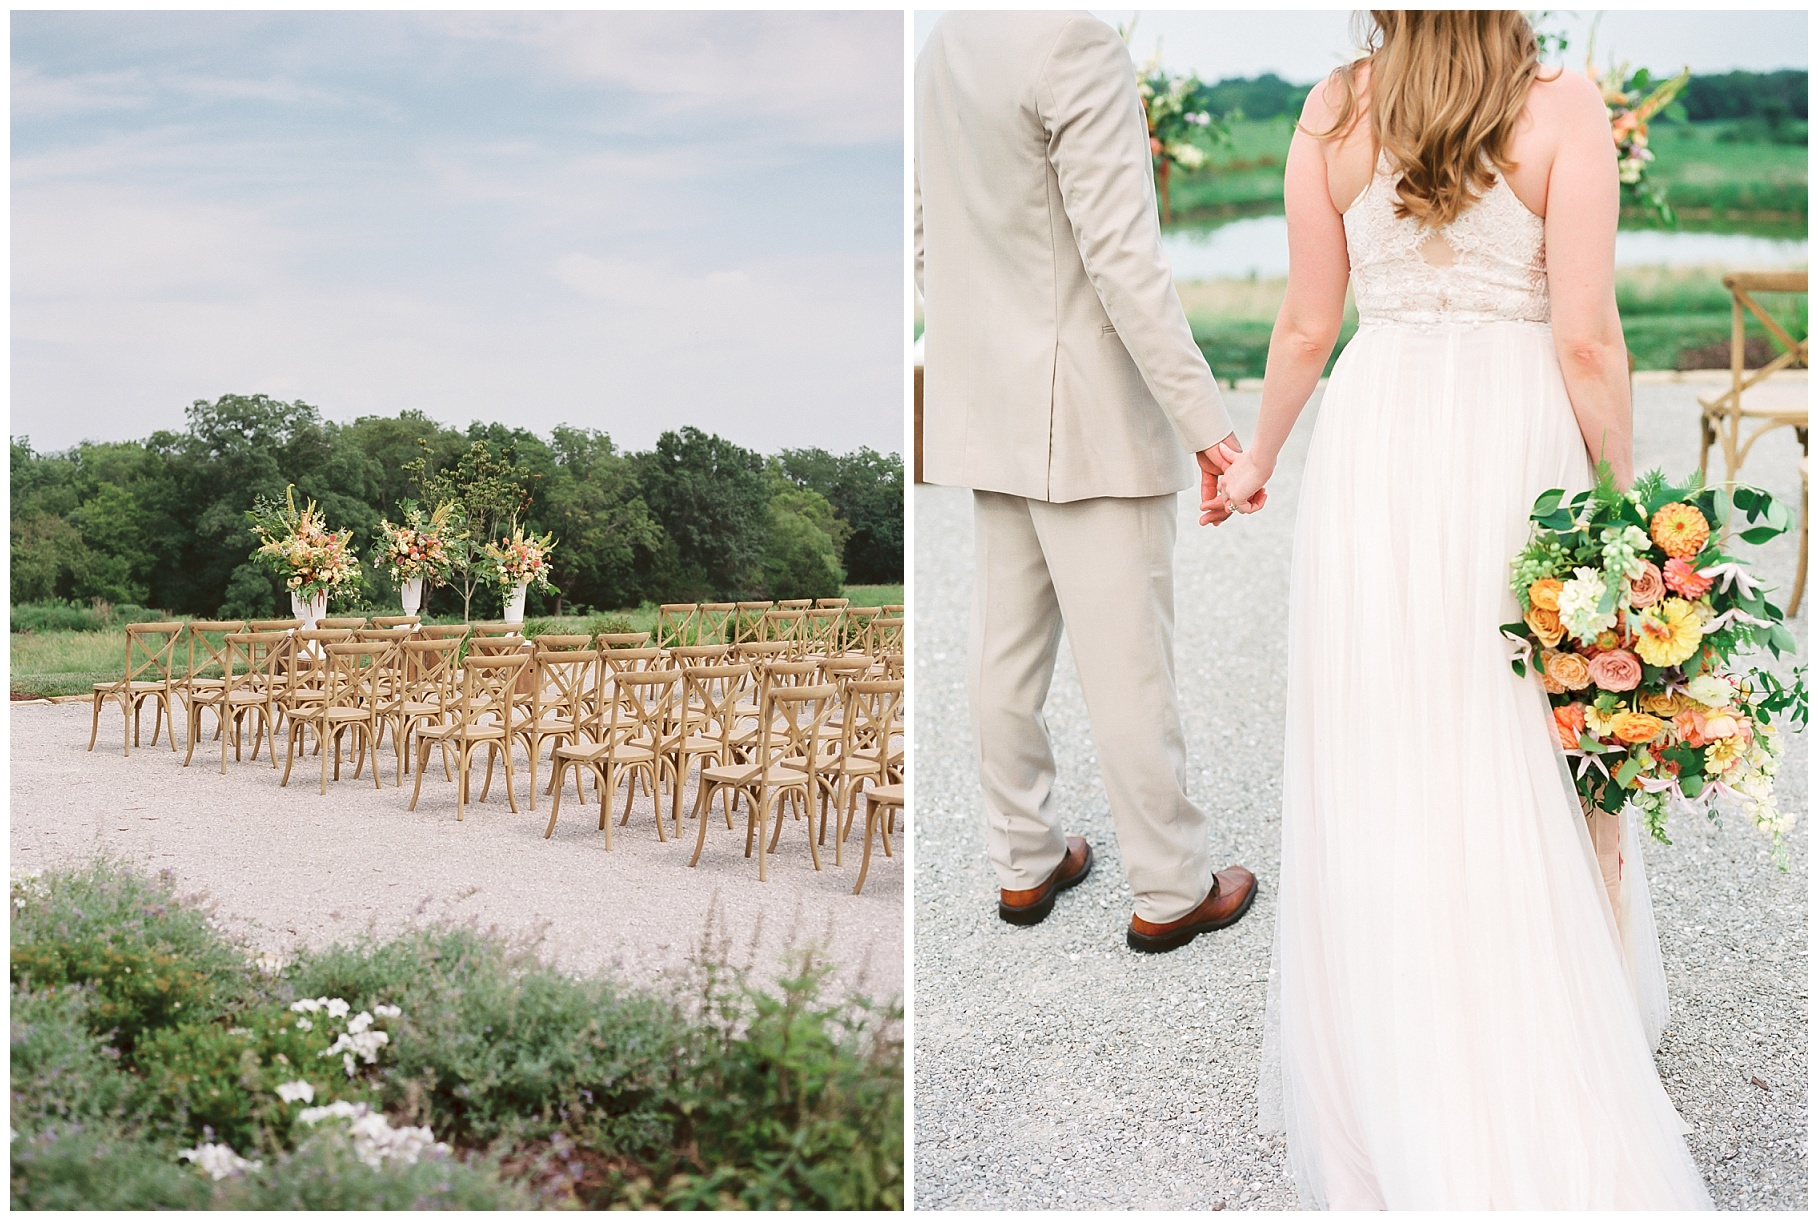 Late Summer Wedding With Pastel Toned Soiree at Blue Bell Farm by Kelsi Kliethermes Photography Best Columbia Missouri Wedding Photographer_0067.jpg